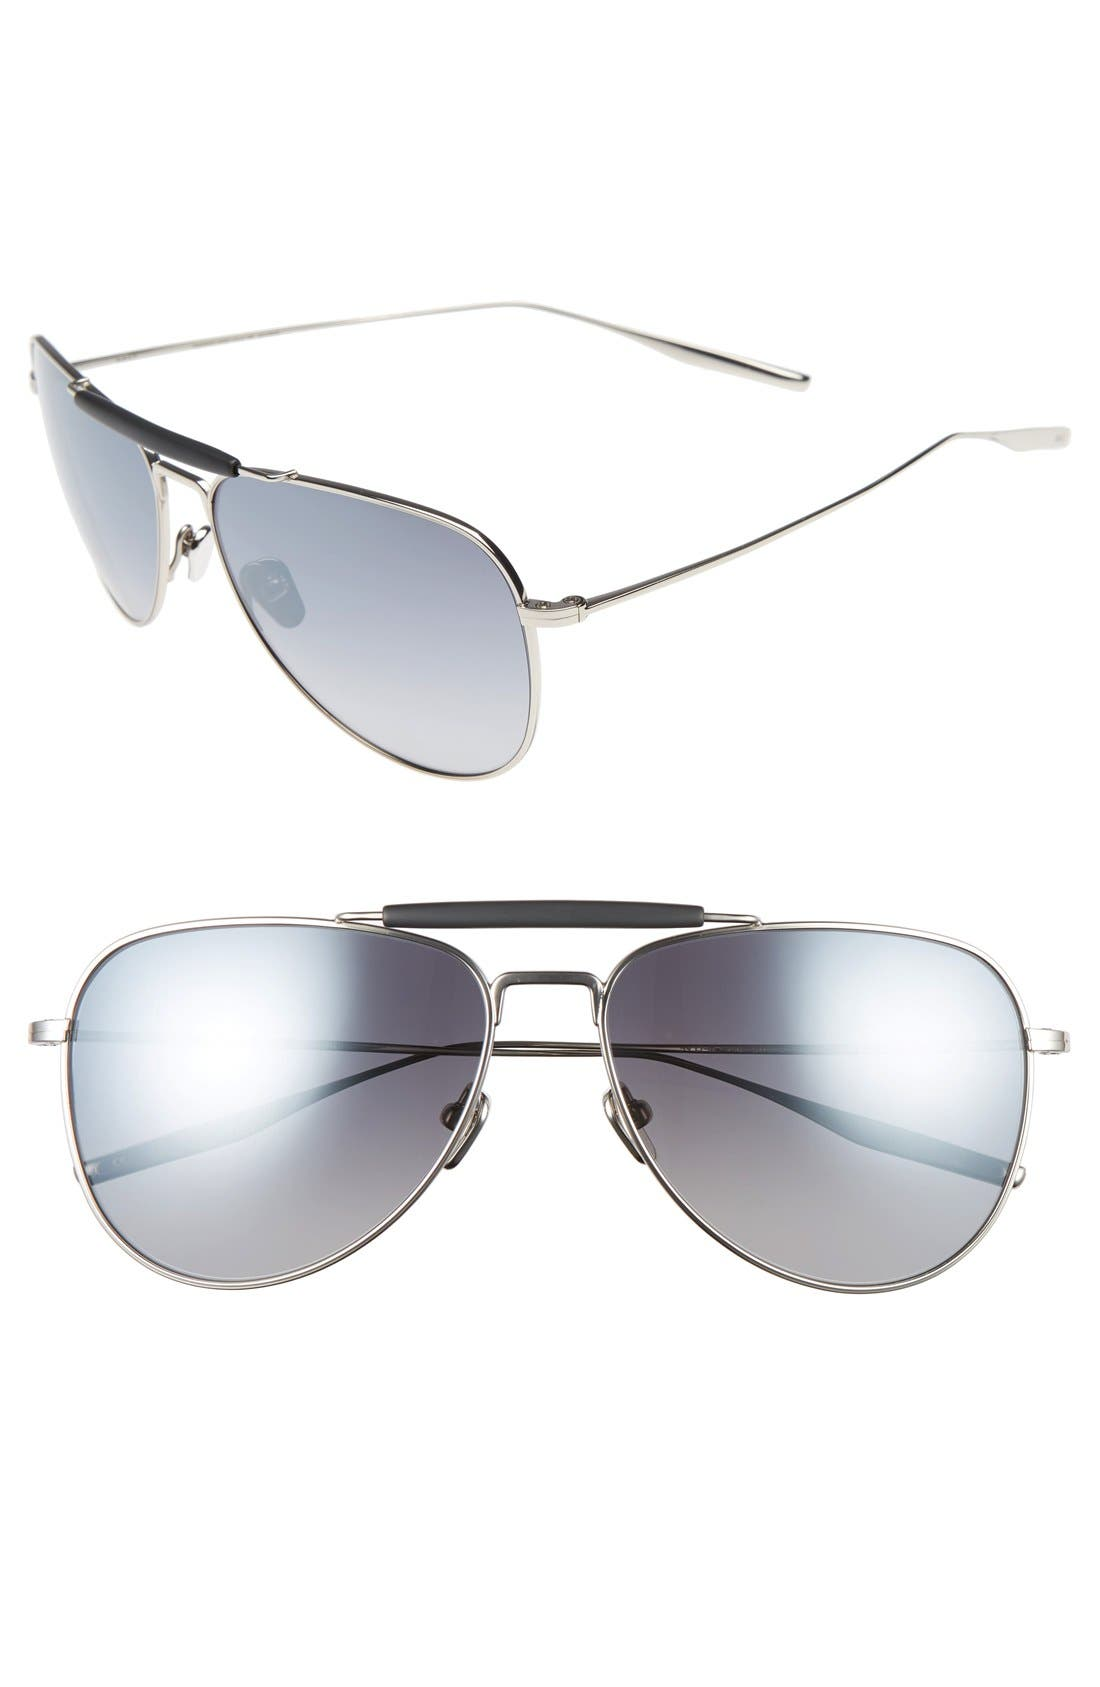 Striker 59mm Aviator Sunglasses,                         Main,                         color, Traditional Silver